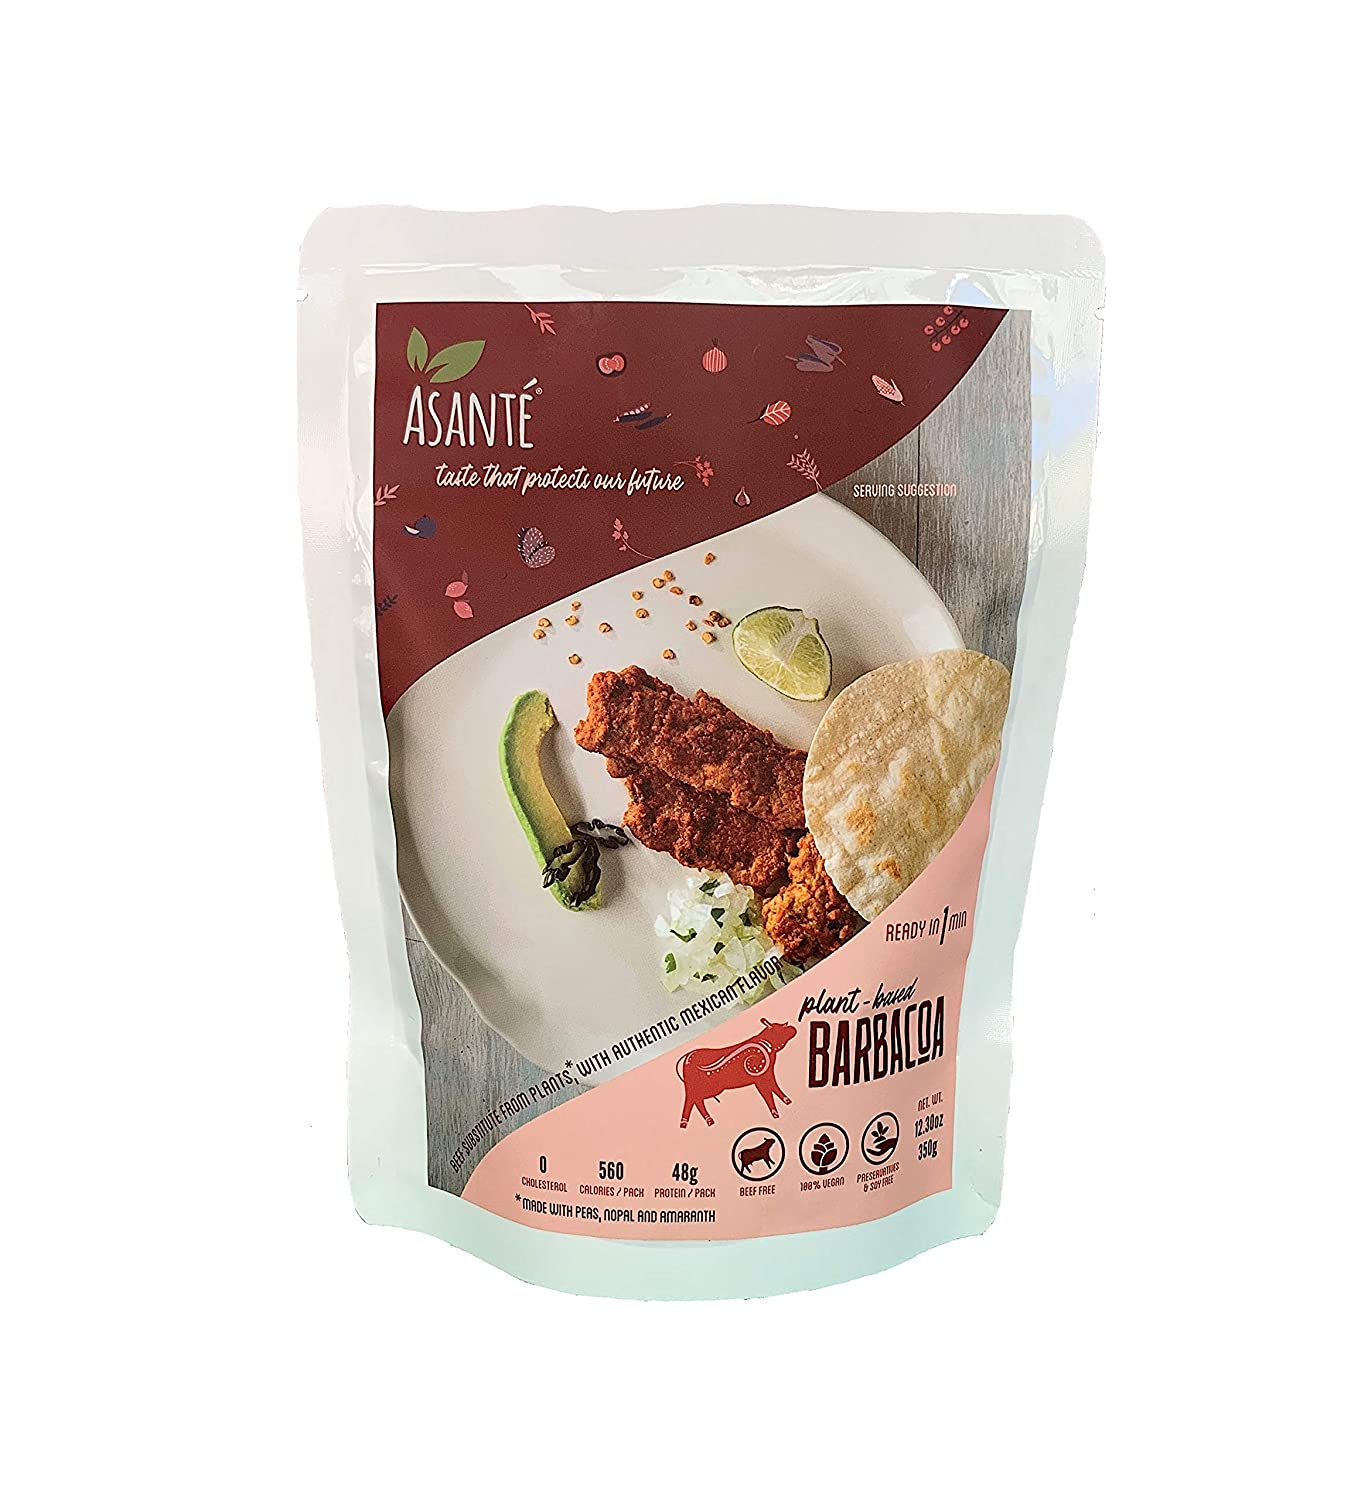 Asante Plant-Based Barbacoa - Vegetarian Food - Meatless, Vegan Alternative - Meat Substitute with Authentic Mexican Flavor - Fresh, Delicious Flavors Made With Natural Ingredients